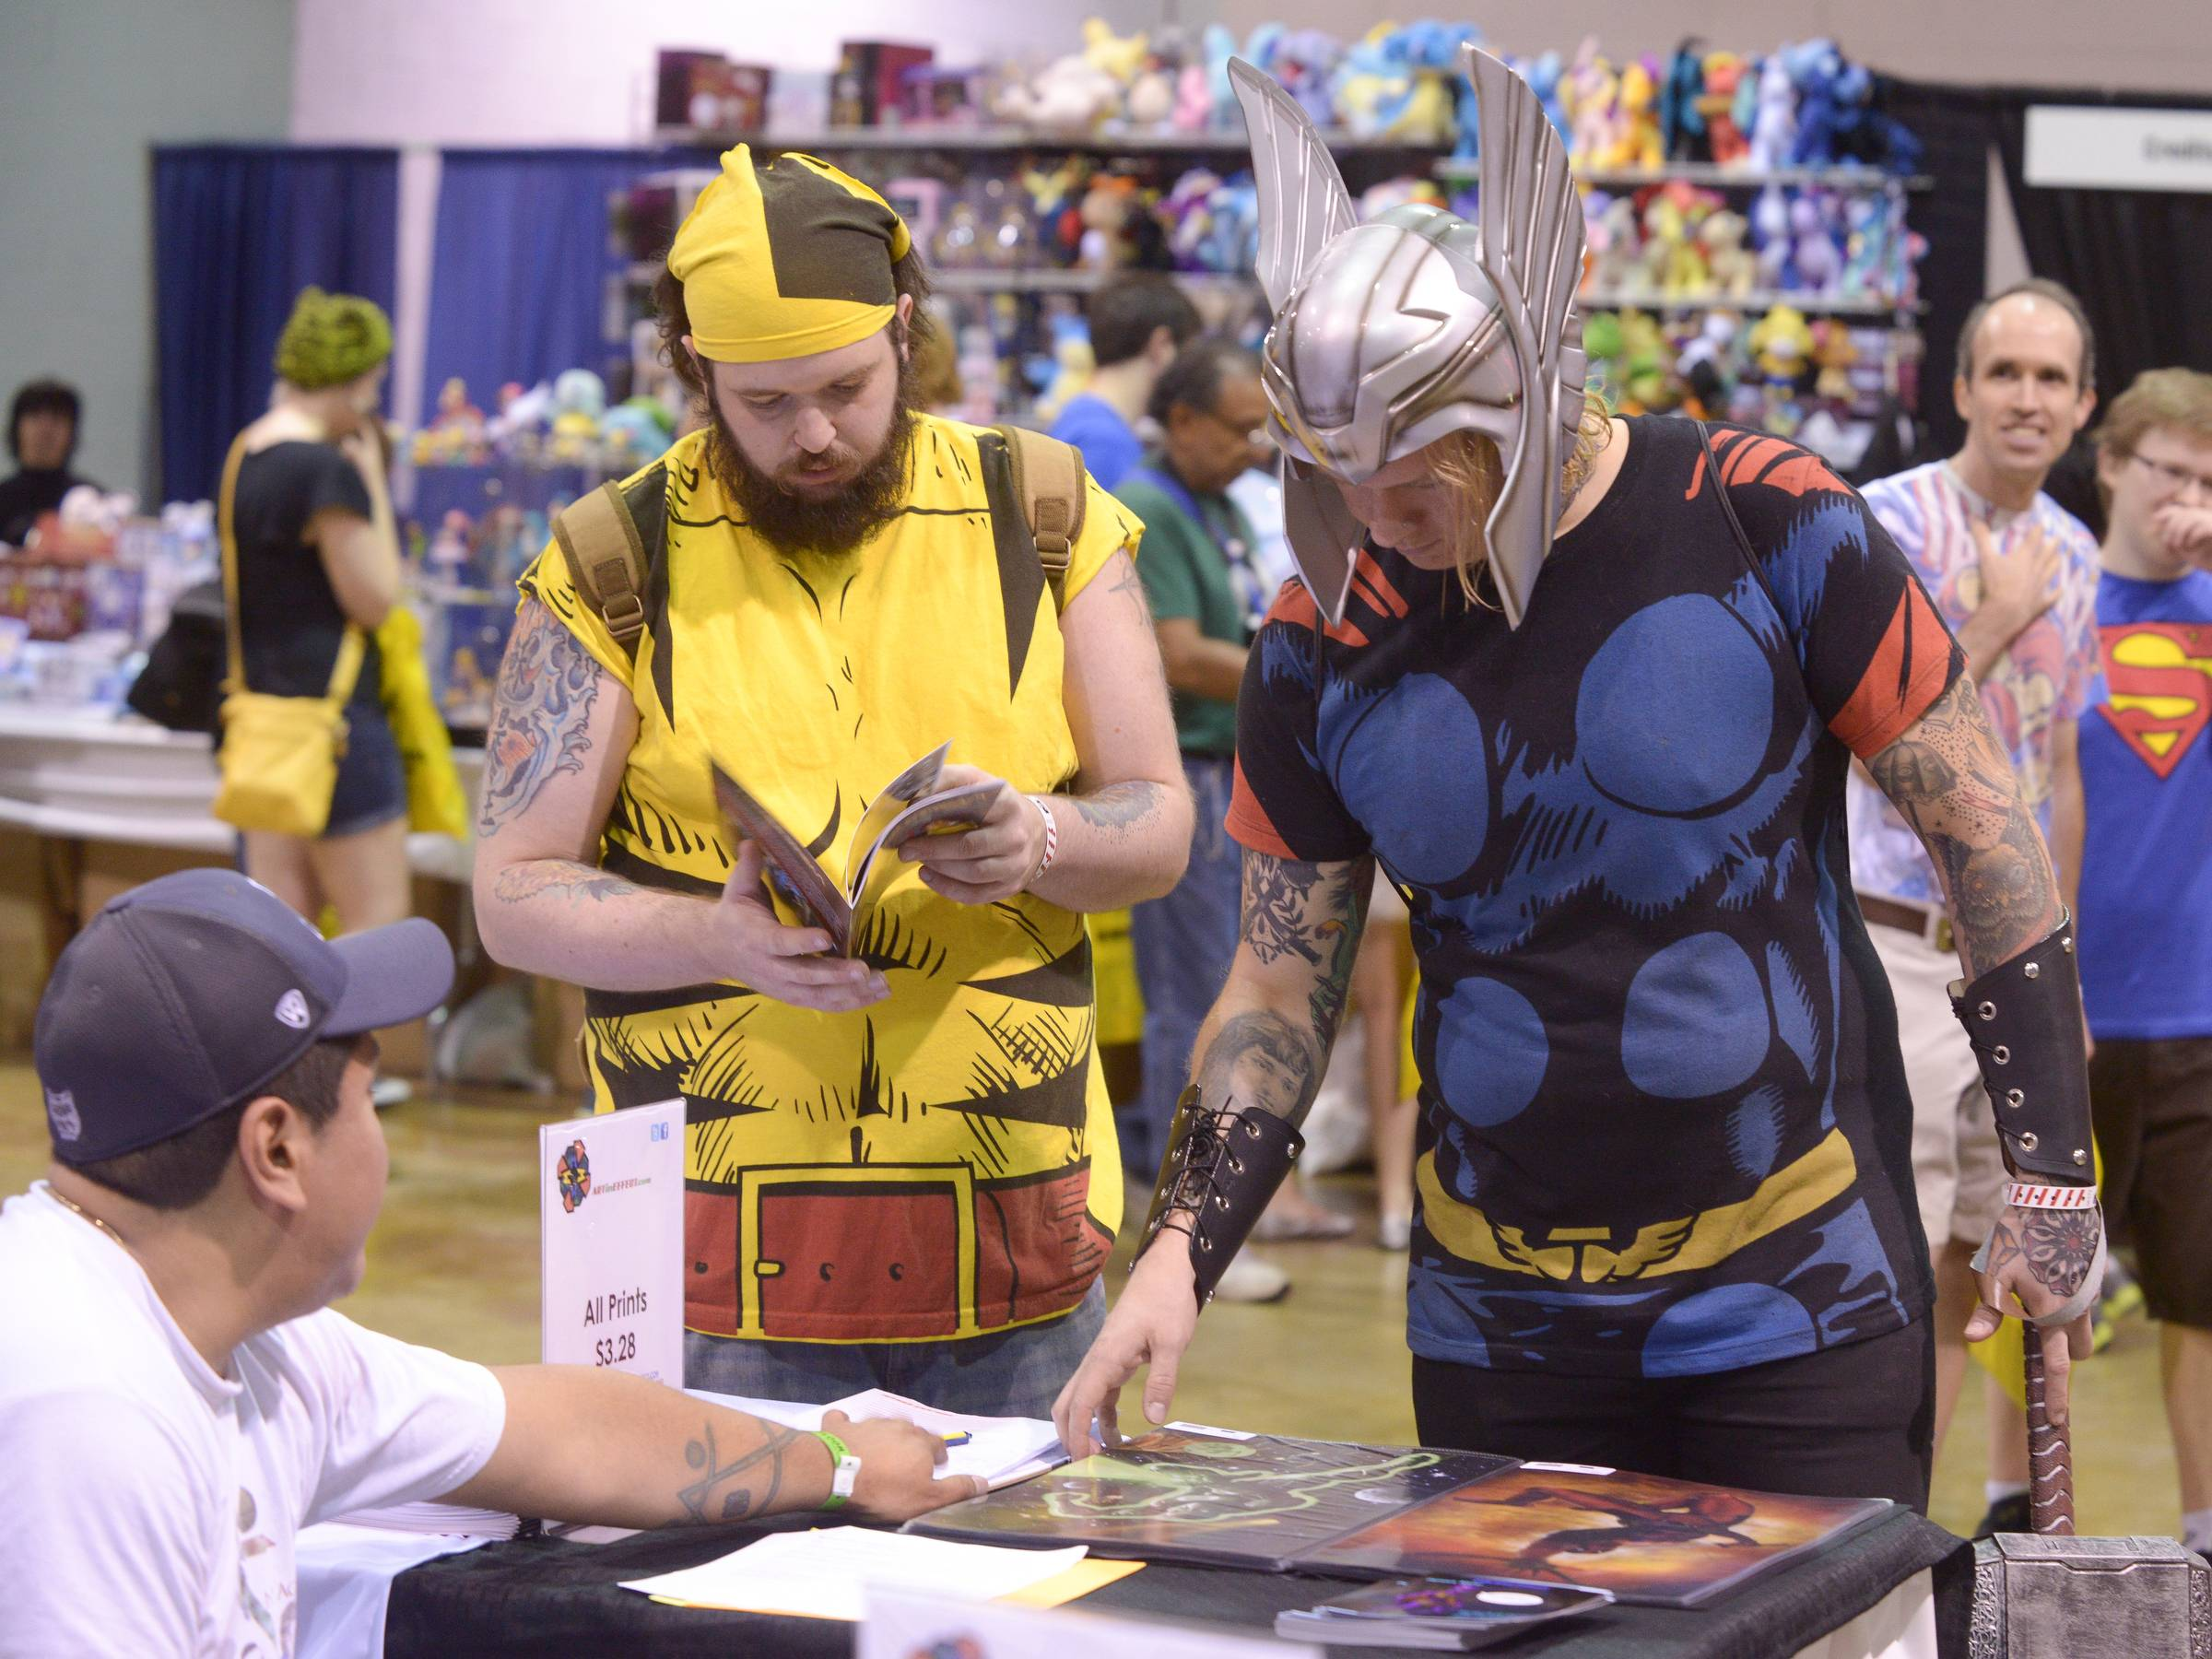 The Donald E. Stephens Convention Center in Rosemont was filled with many comic book fans such as Dan Parks and Ben Ervin of Ohio who came to Comic Con fully dress as Wolverine and Thor.